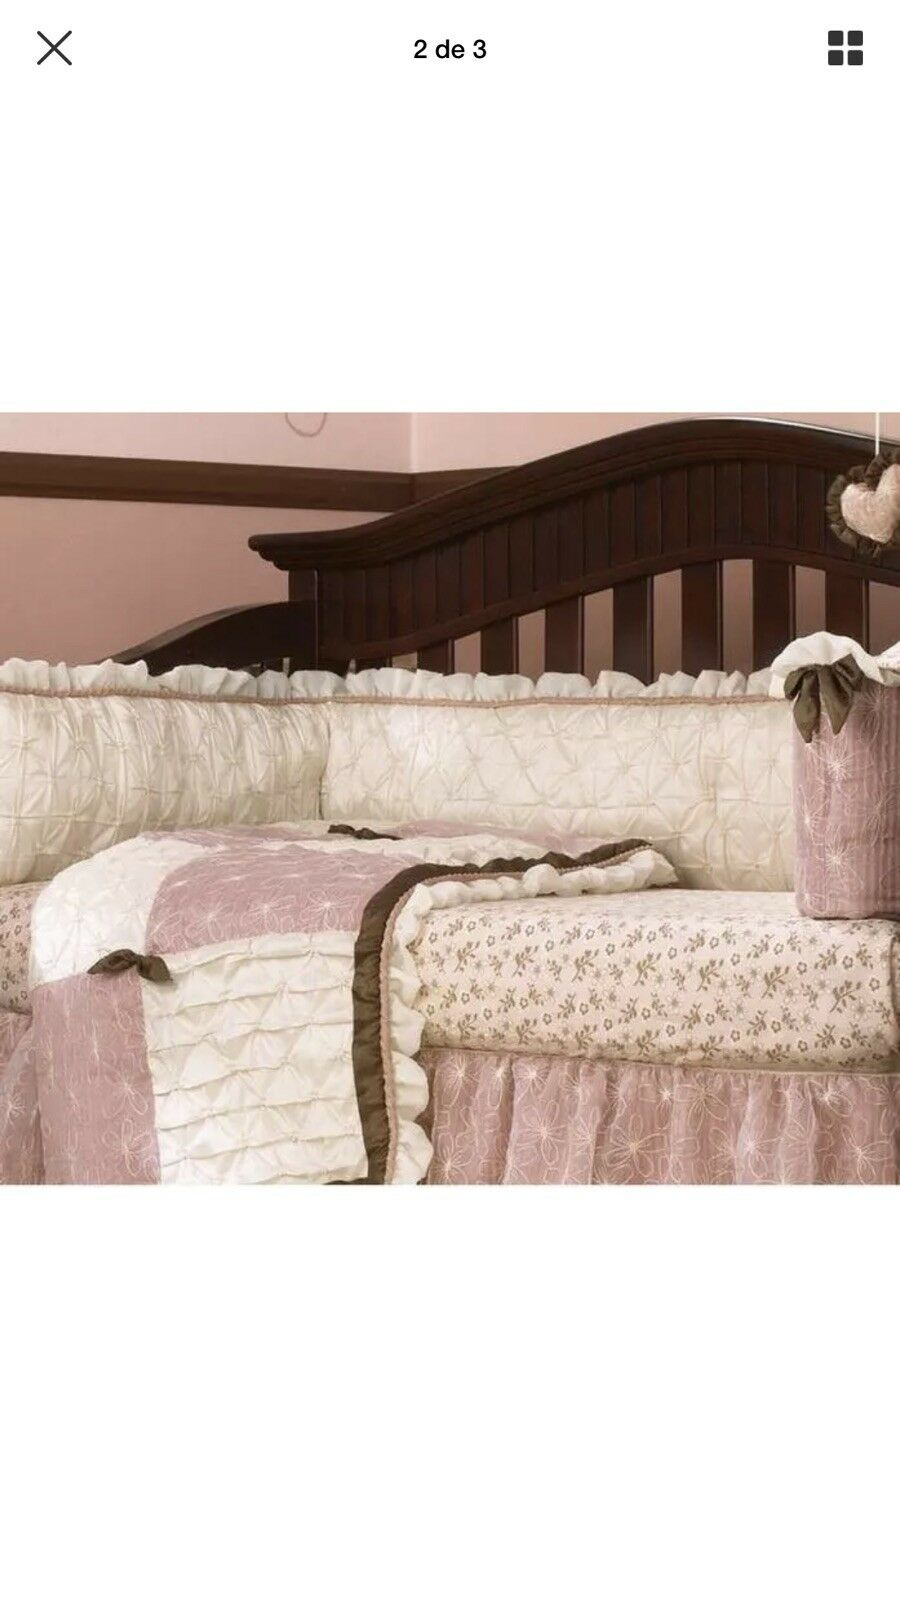 CoCaLo Daniella crib bedding set complete kit